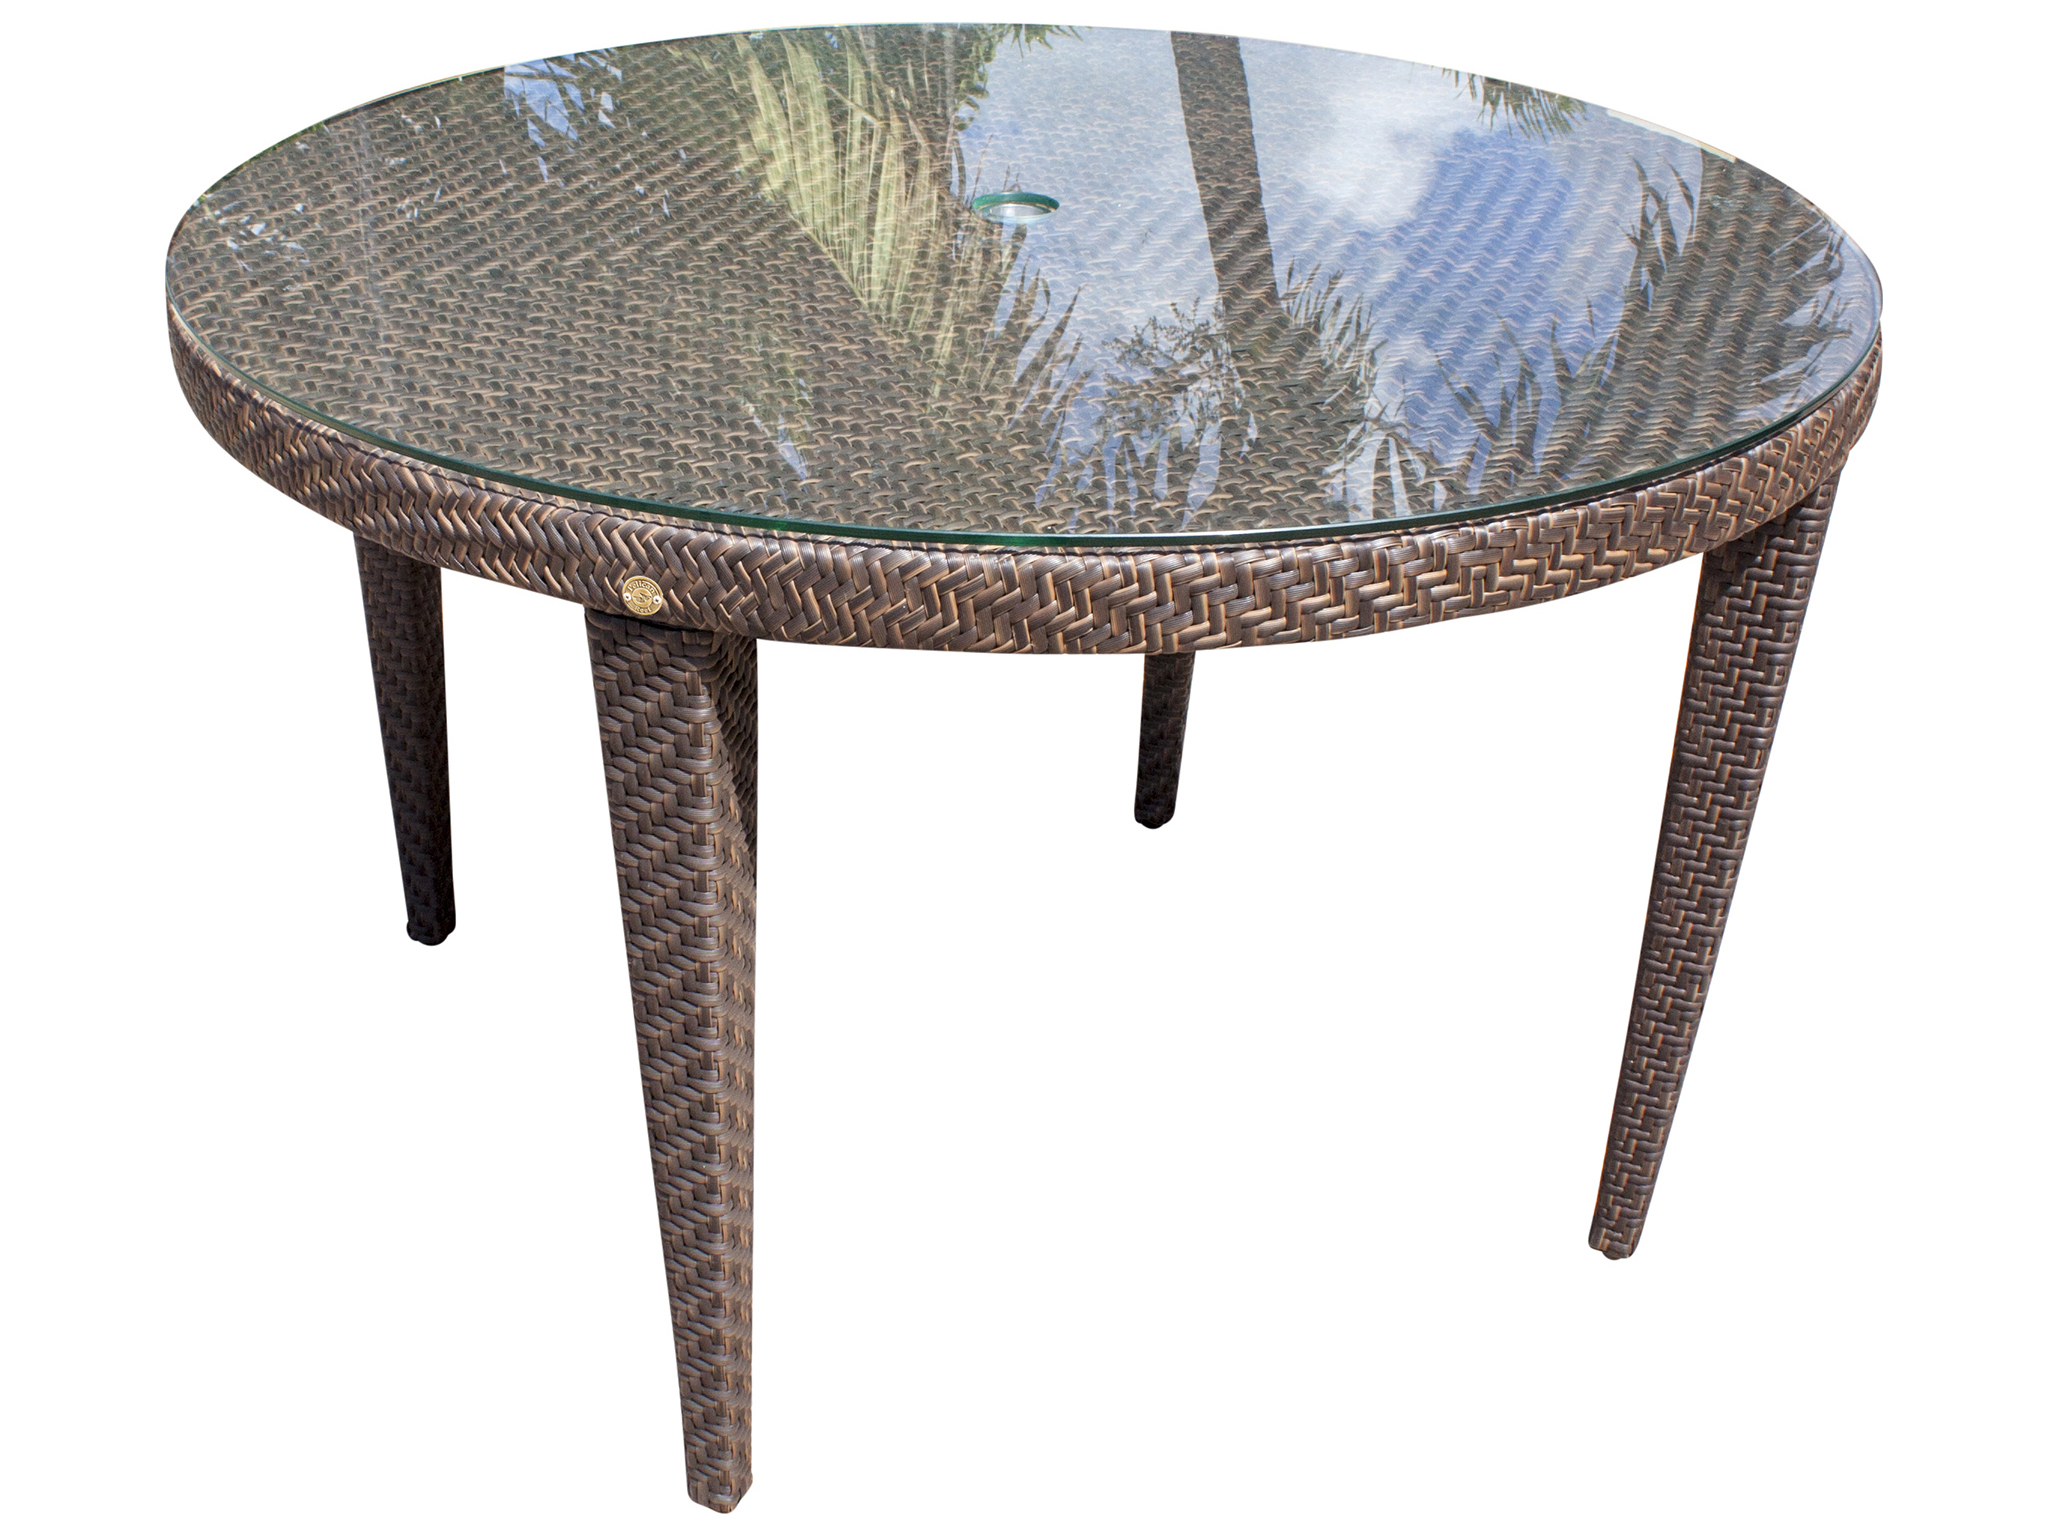 Hospitality Rattan Outdoor Soho Java Brown Wicker 47wide Round Gl Top Dining Table With Umbrella Hole